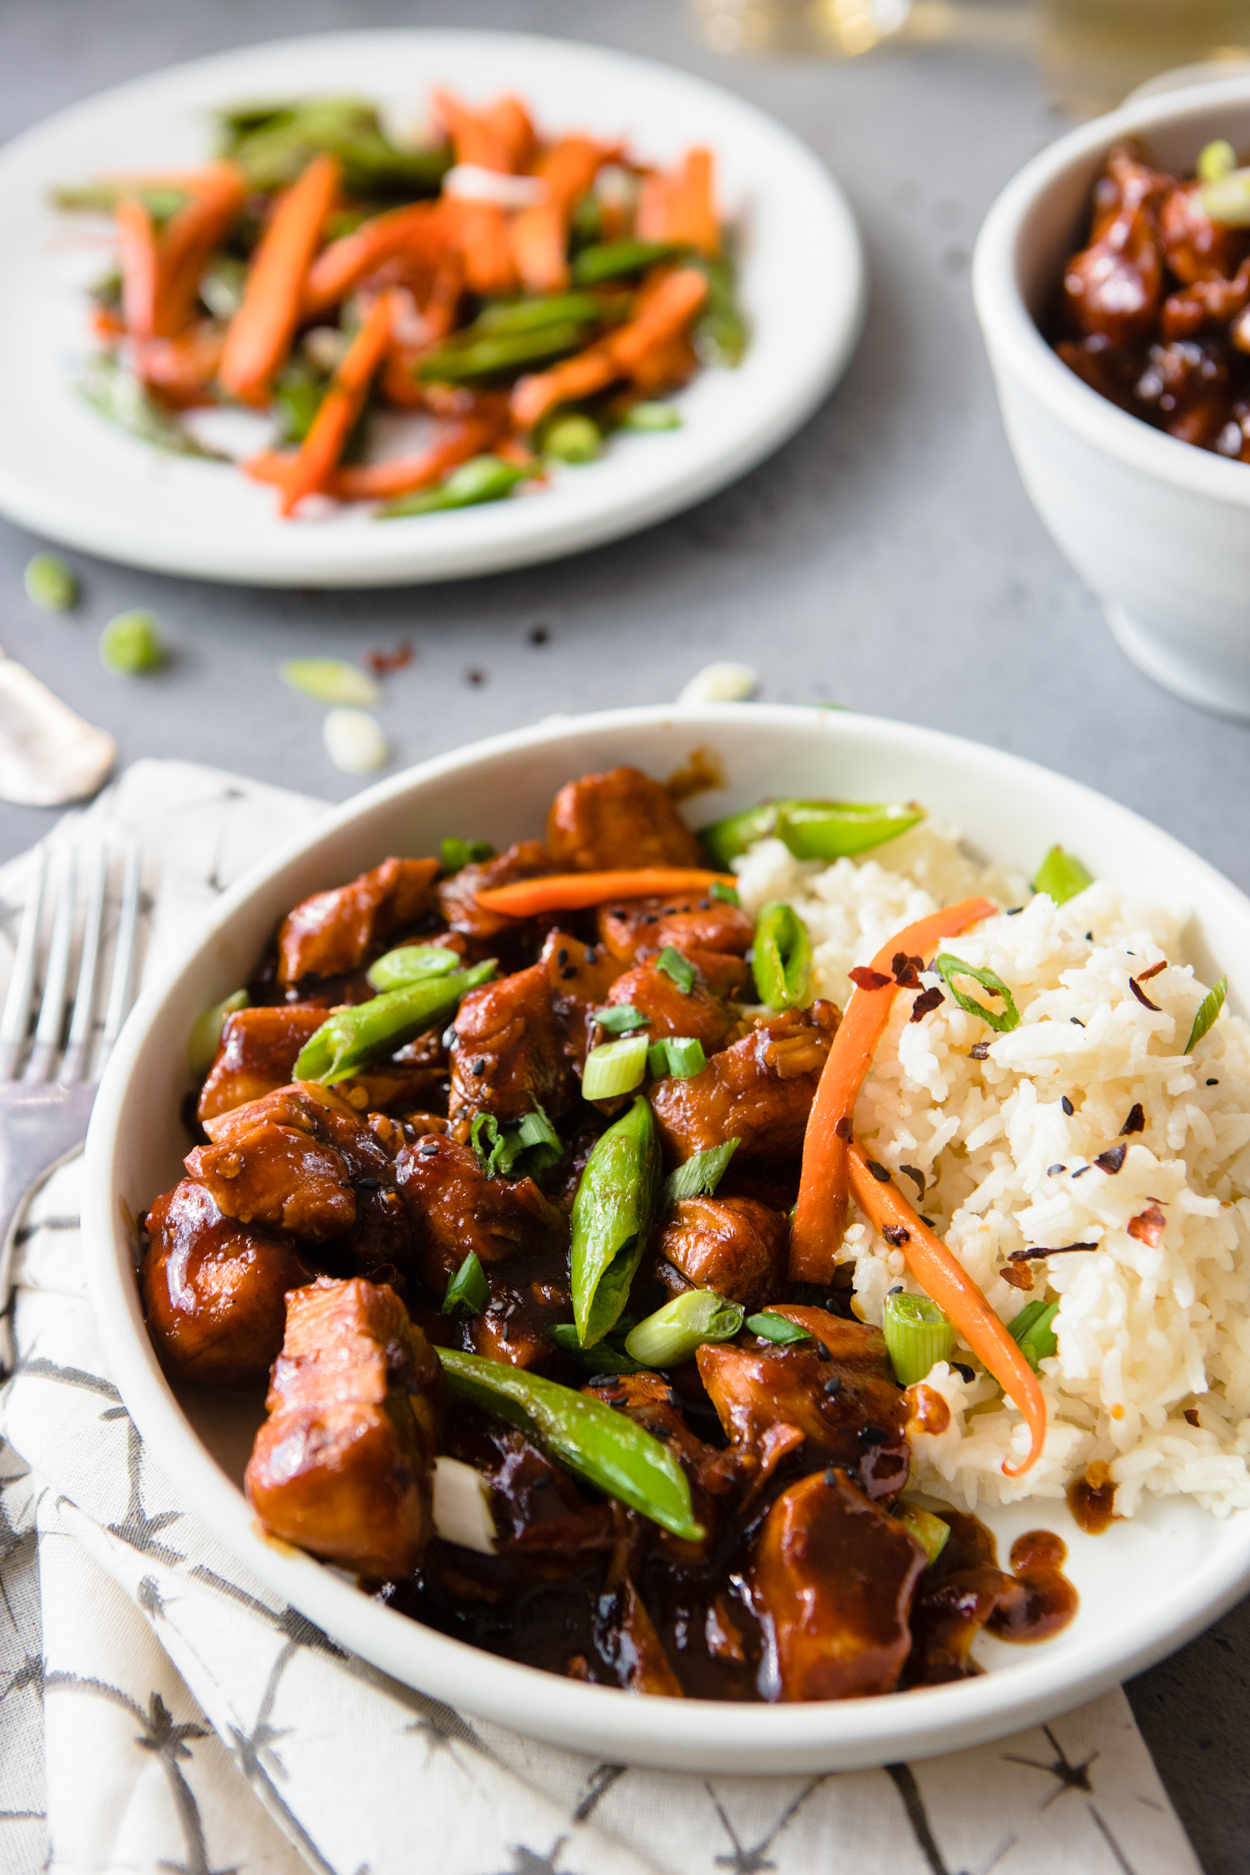 A white bowl full of General Tso's Chicken and rice garnished with scallions and carrots